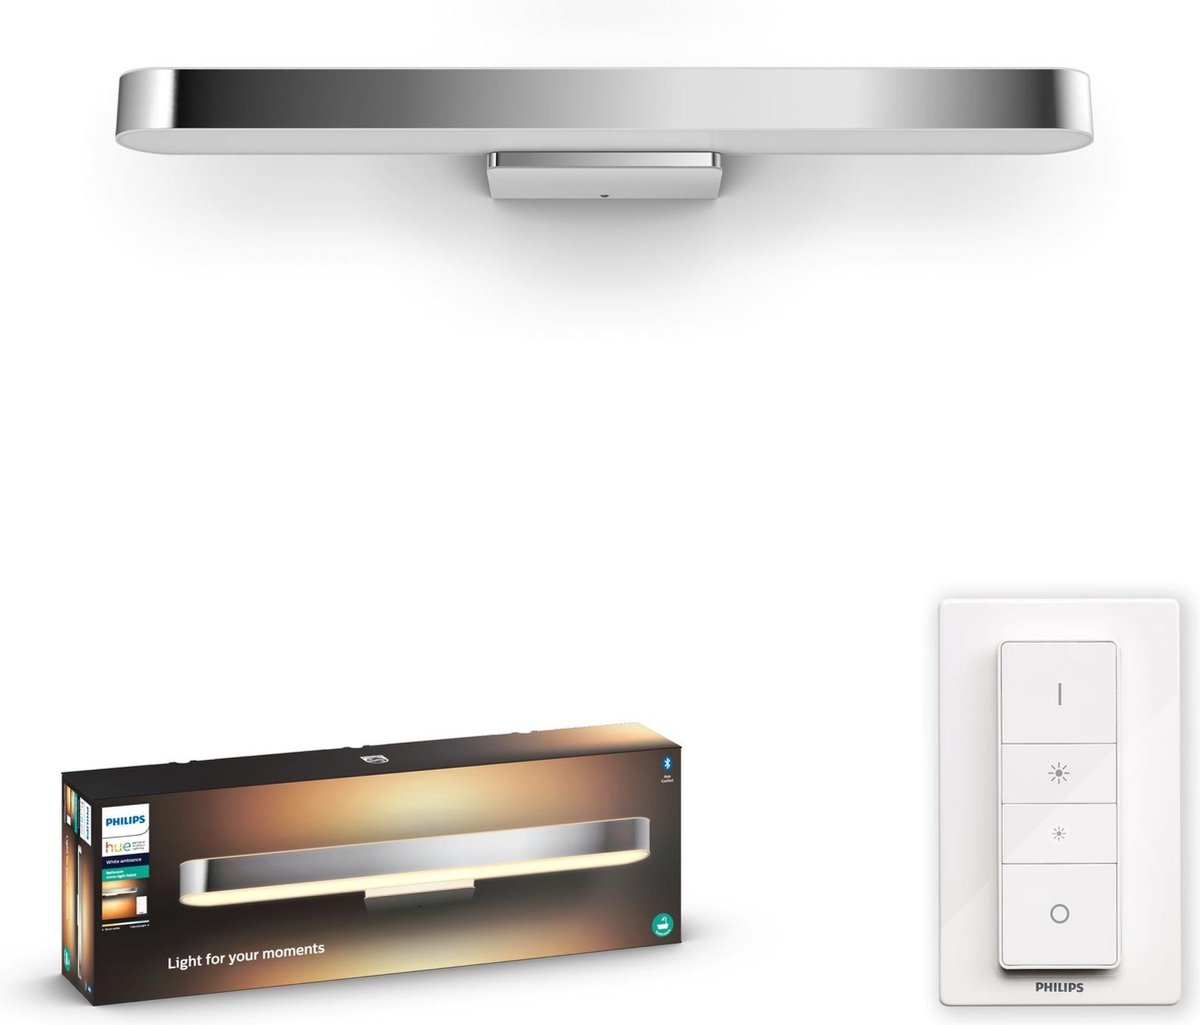 Philips Hue Adore Badkamer Wandlamp - Chrome - White Ambiance - Bluetooth - incl. Dimmer switch